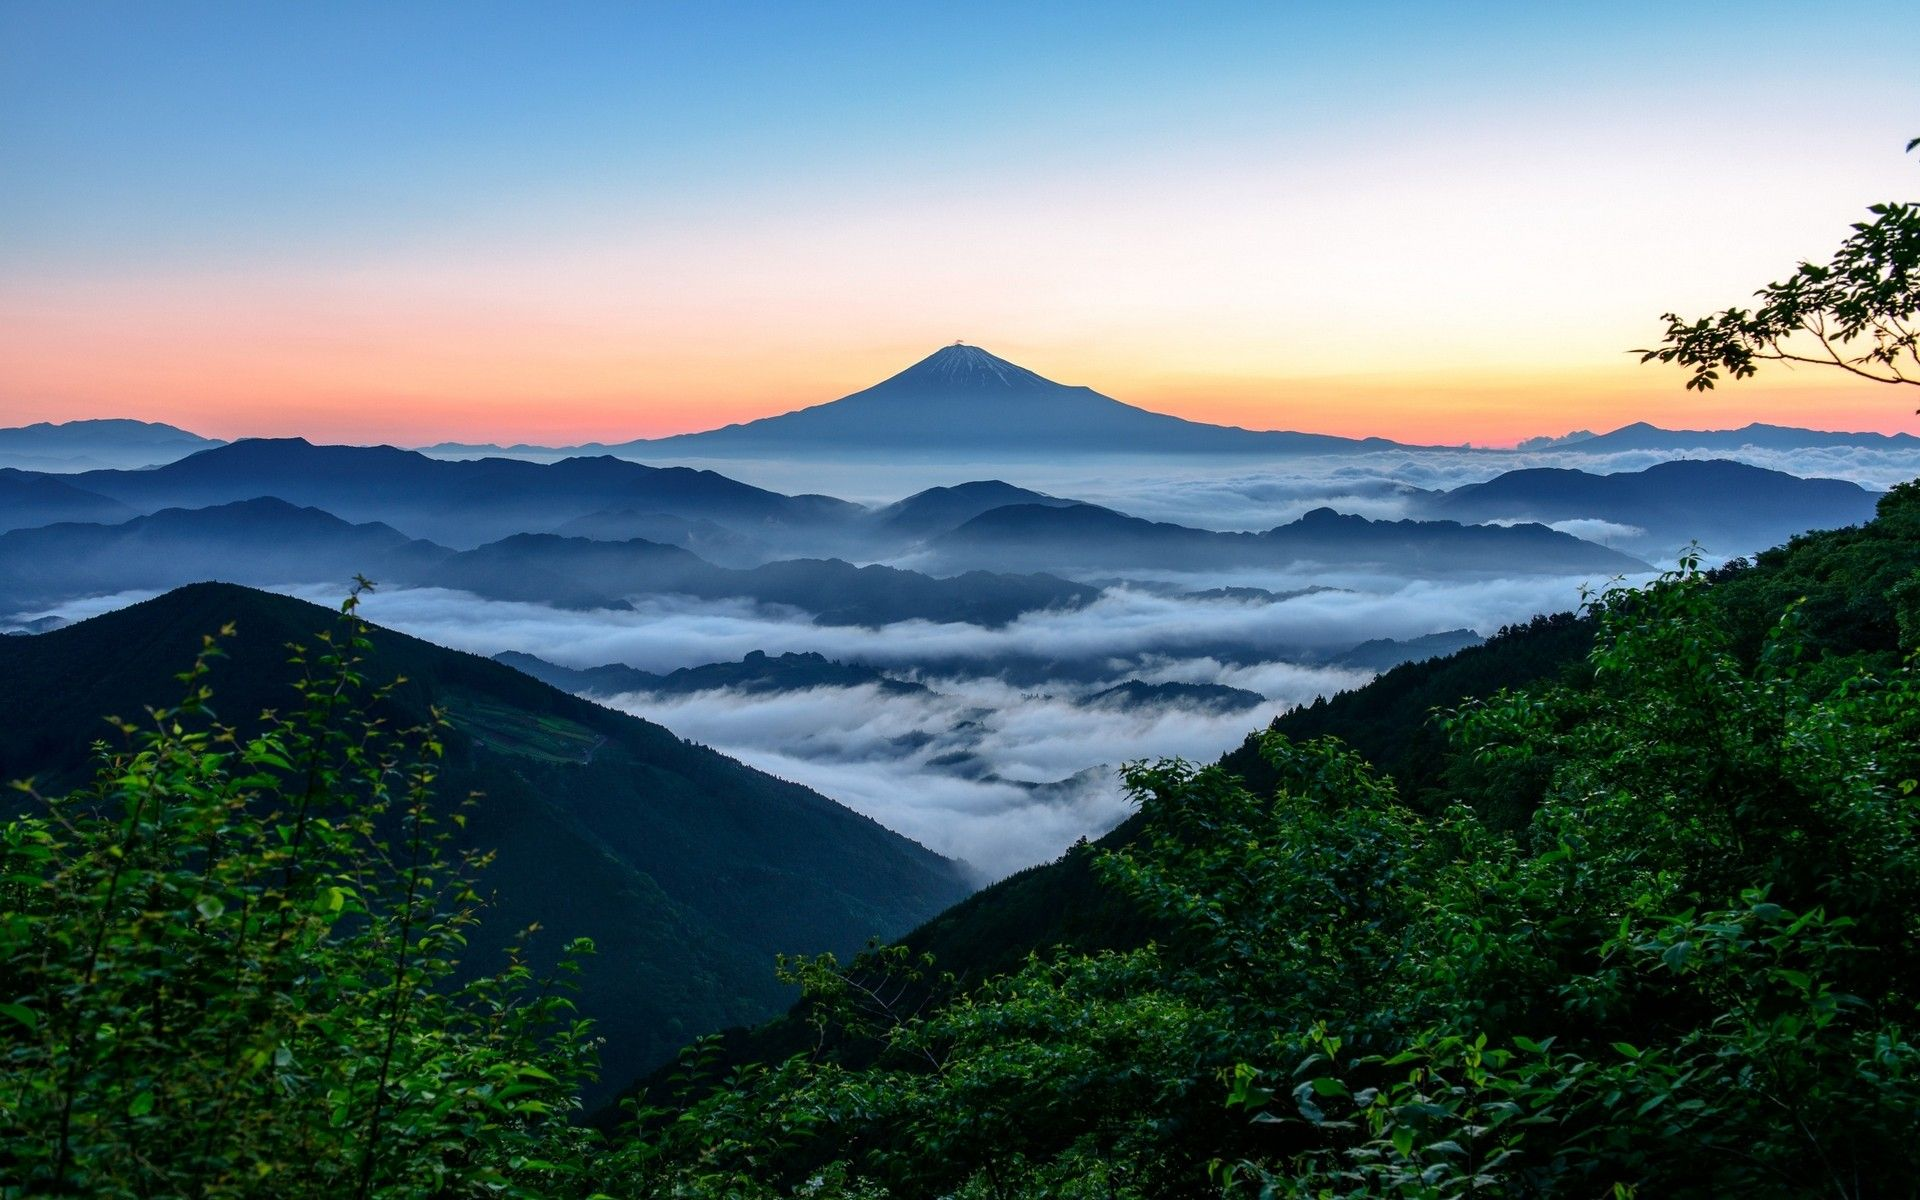 Nature Landscape Mount Fuji Japan Sunrise Forest Mountain